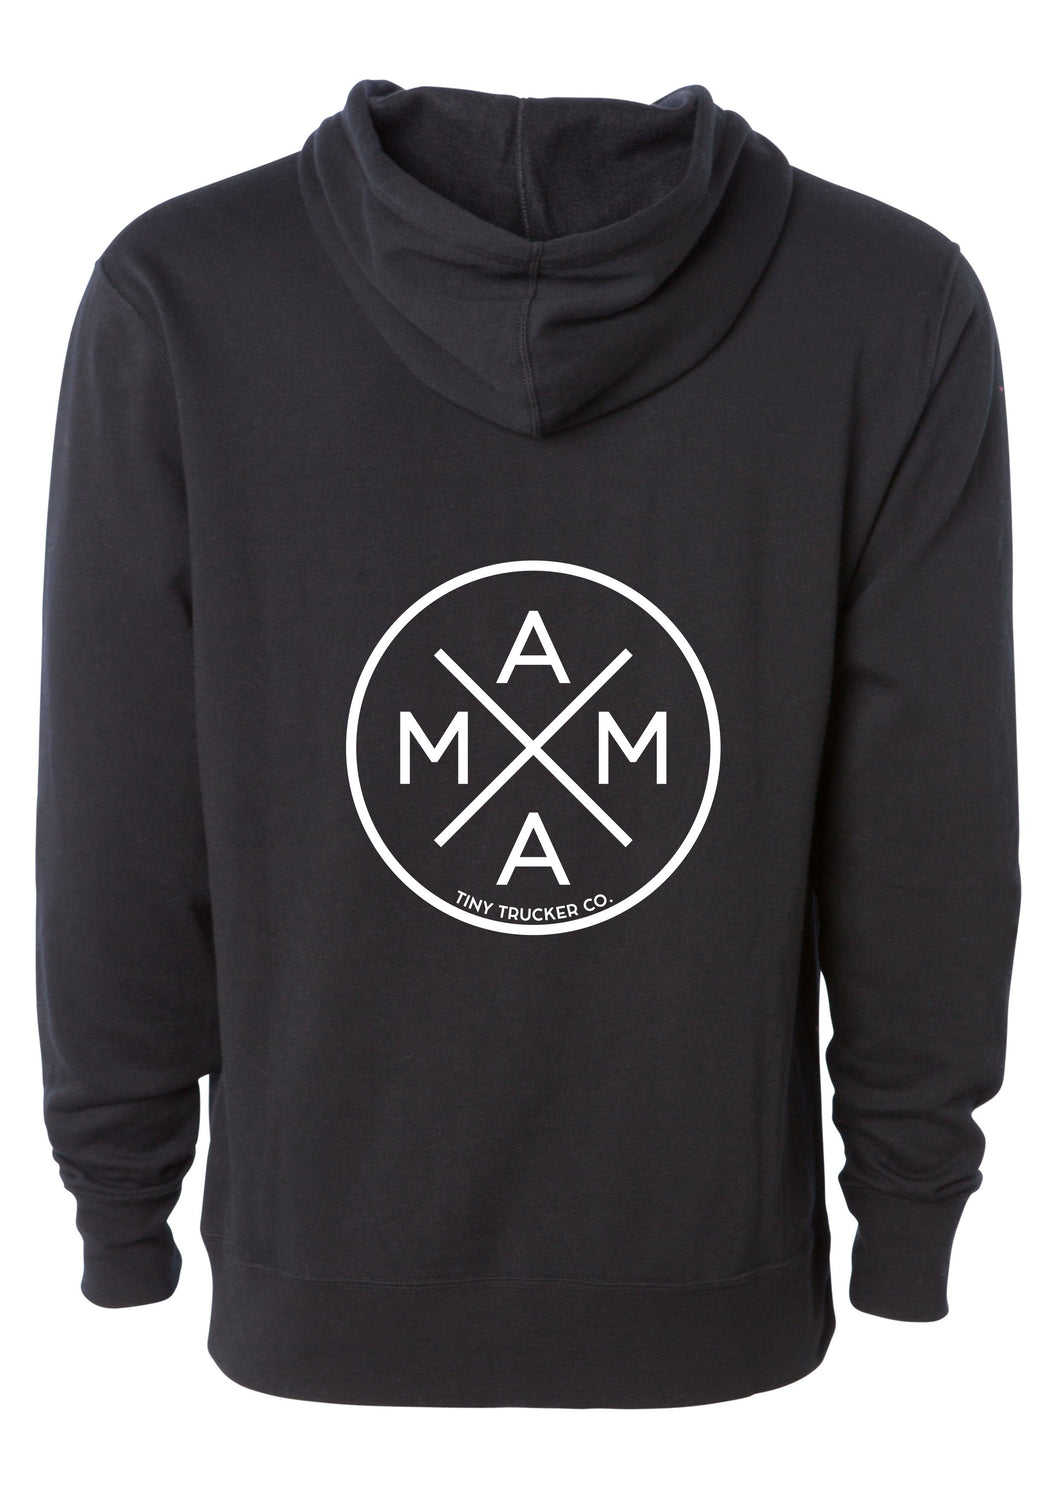 MAMA X ™ UNISEX PULLOVER SWEATSHIRT - ON SALE!